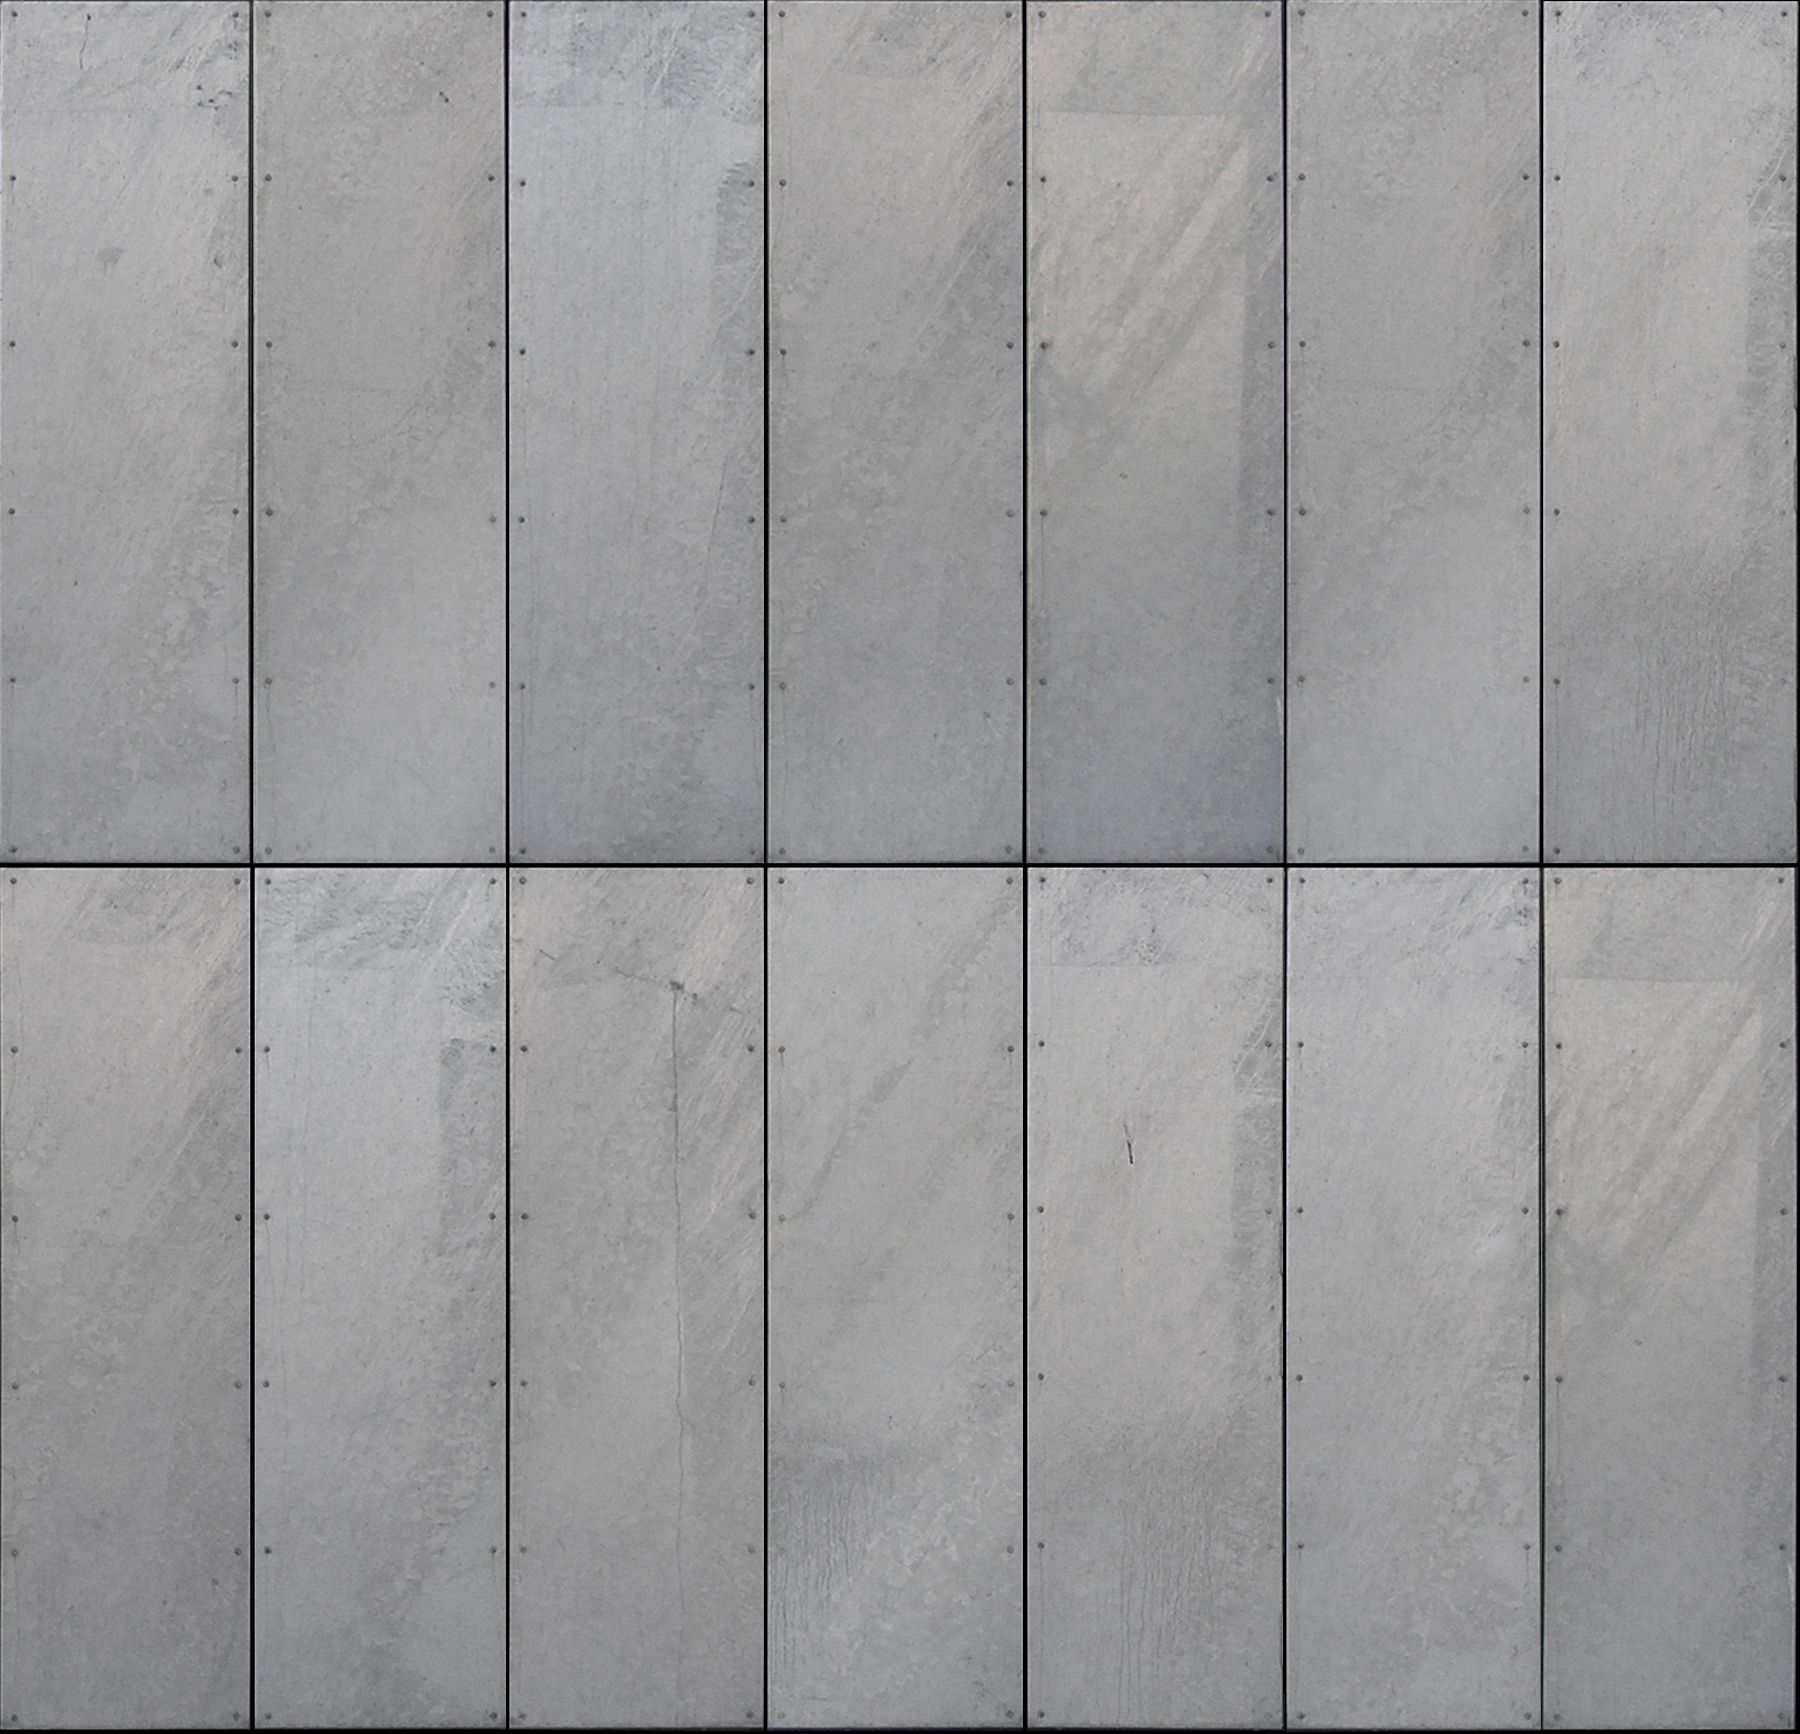 all sizes free seamless galvanized steel texture it university seierseier flickr photo sharing - Metal Roof Texture